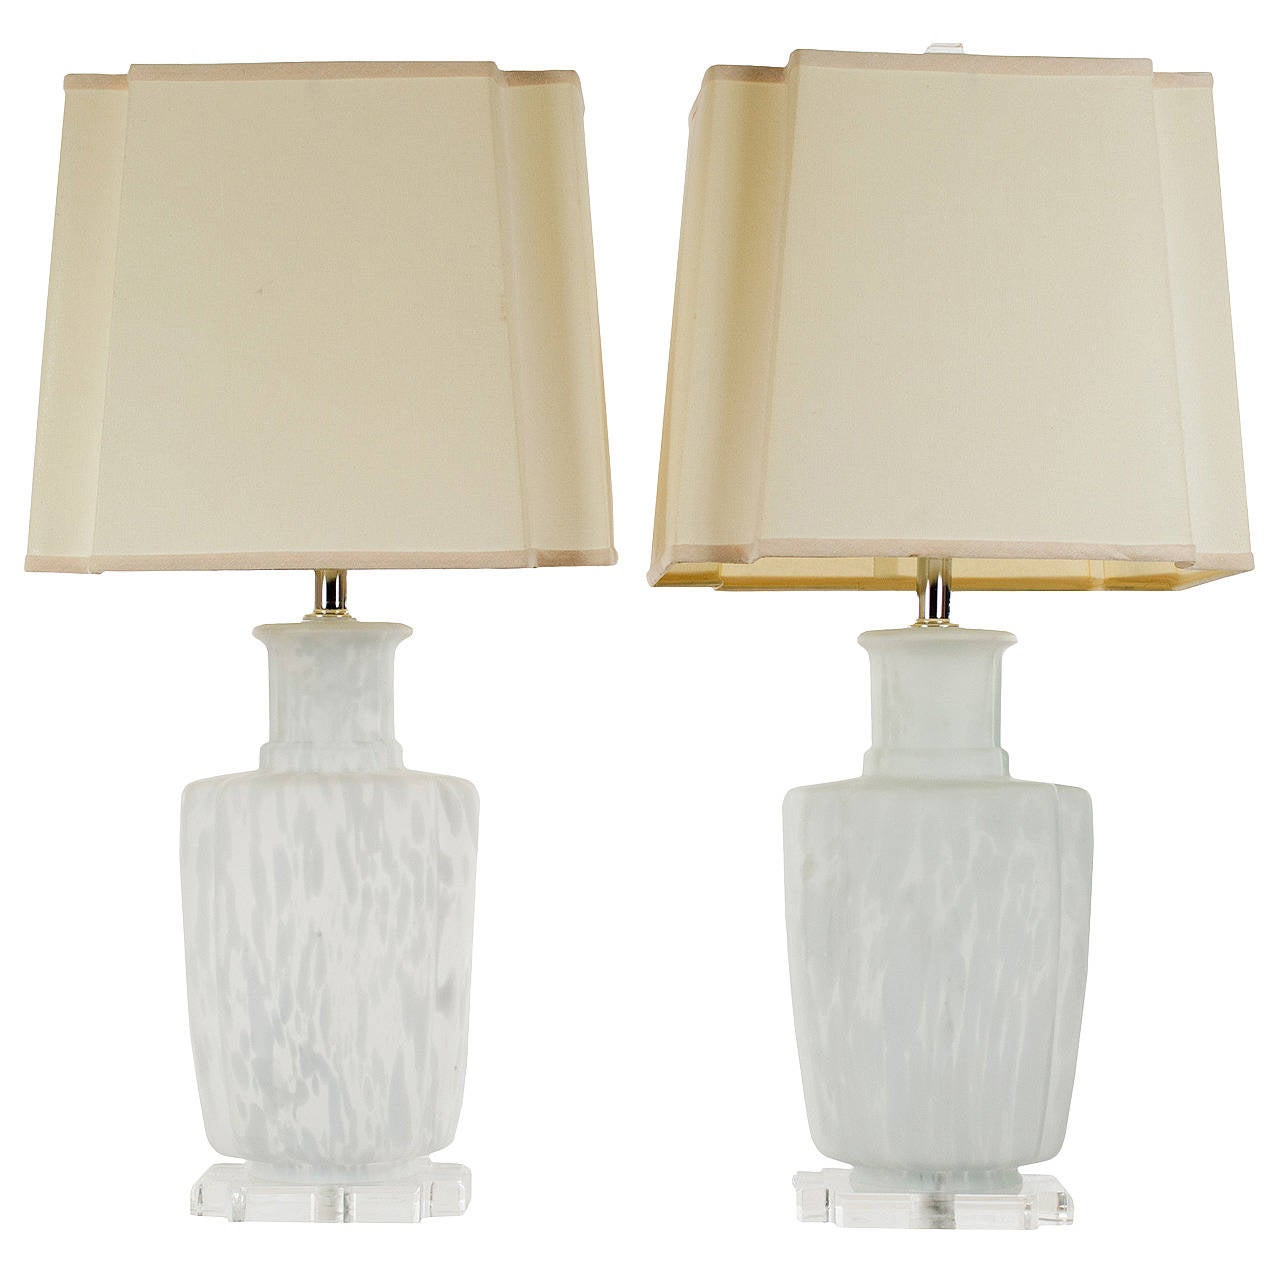 Pair of Murano Blown Glass Table Lamps